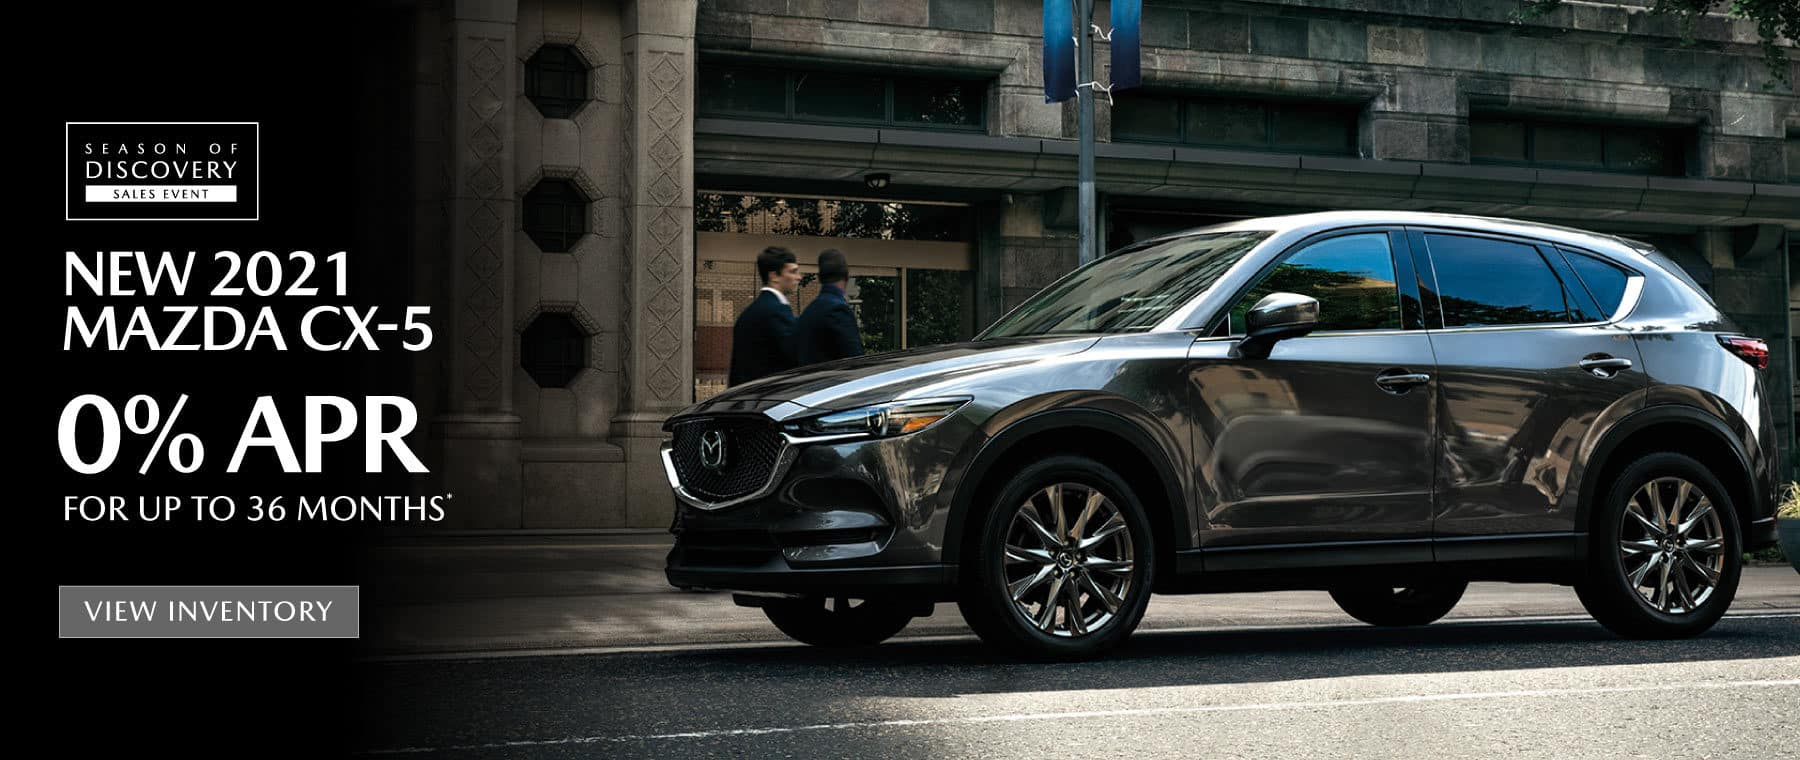 2021 Mazda CX-5   0% APR for 36 months   View Inventory